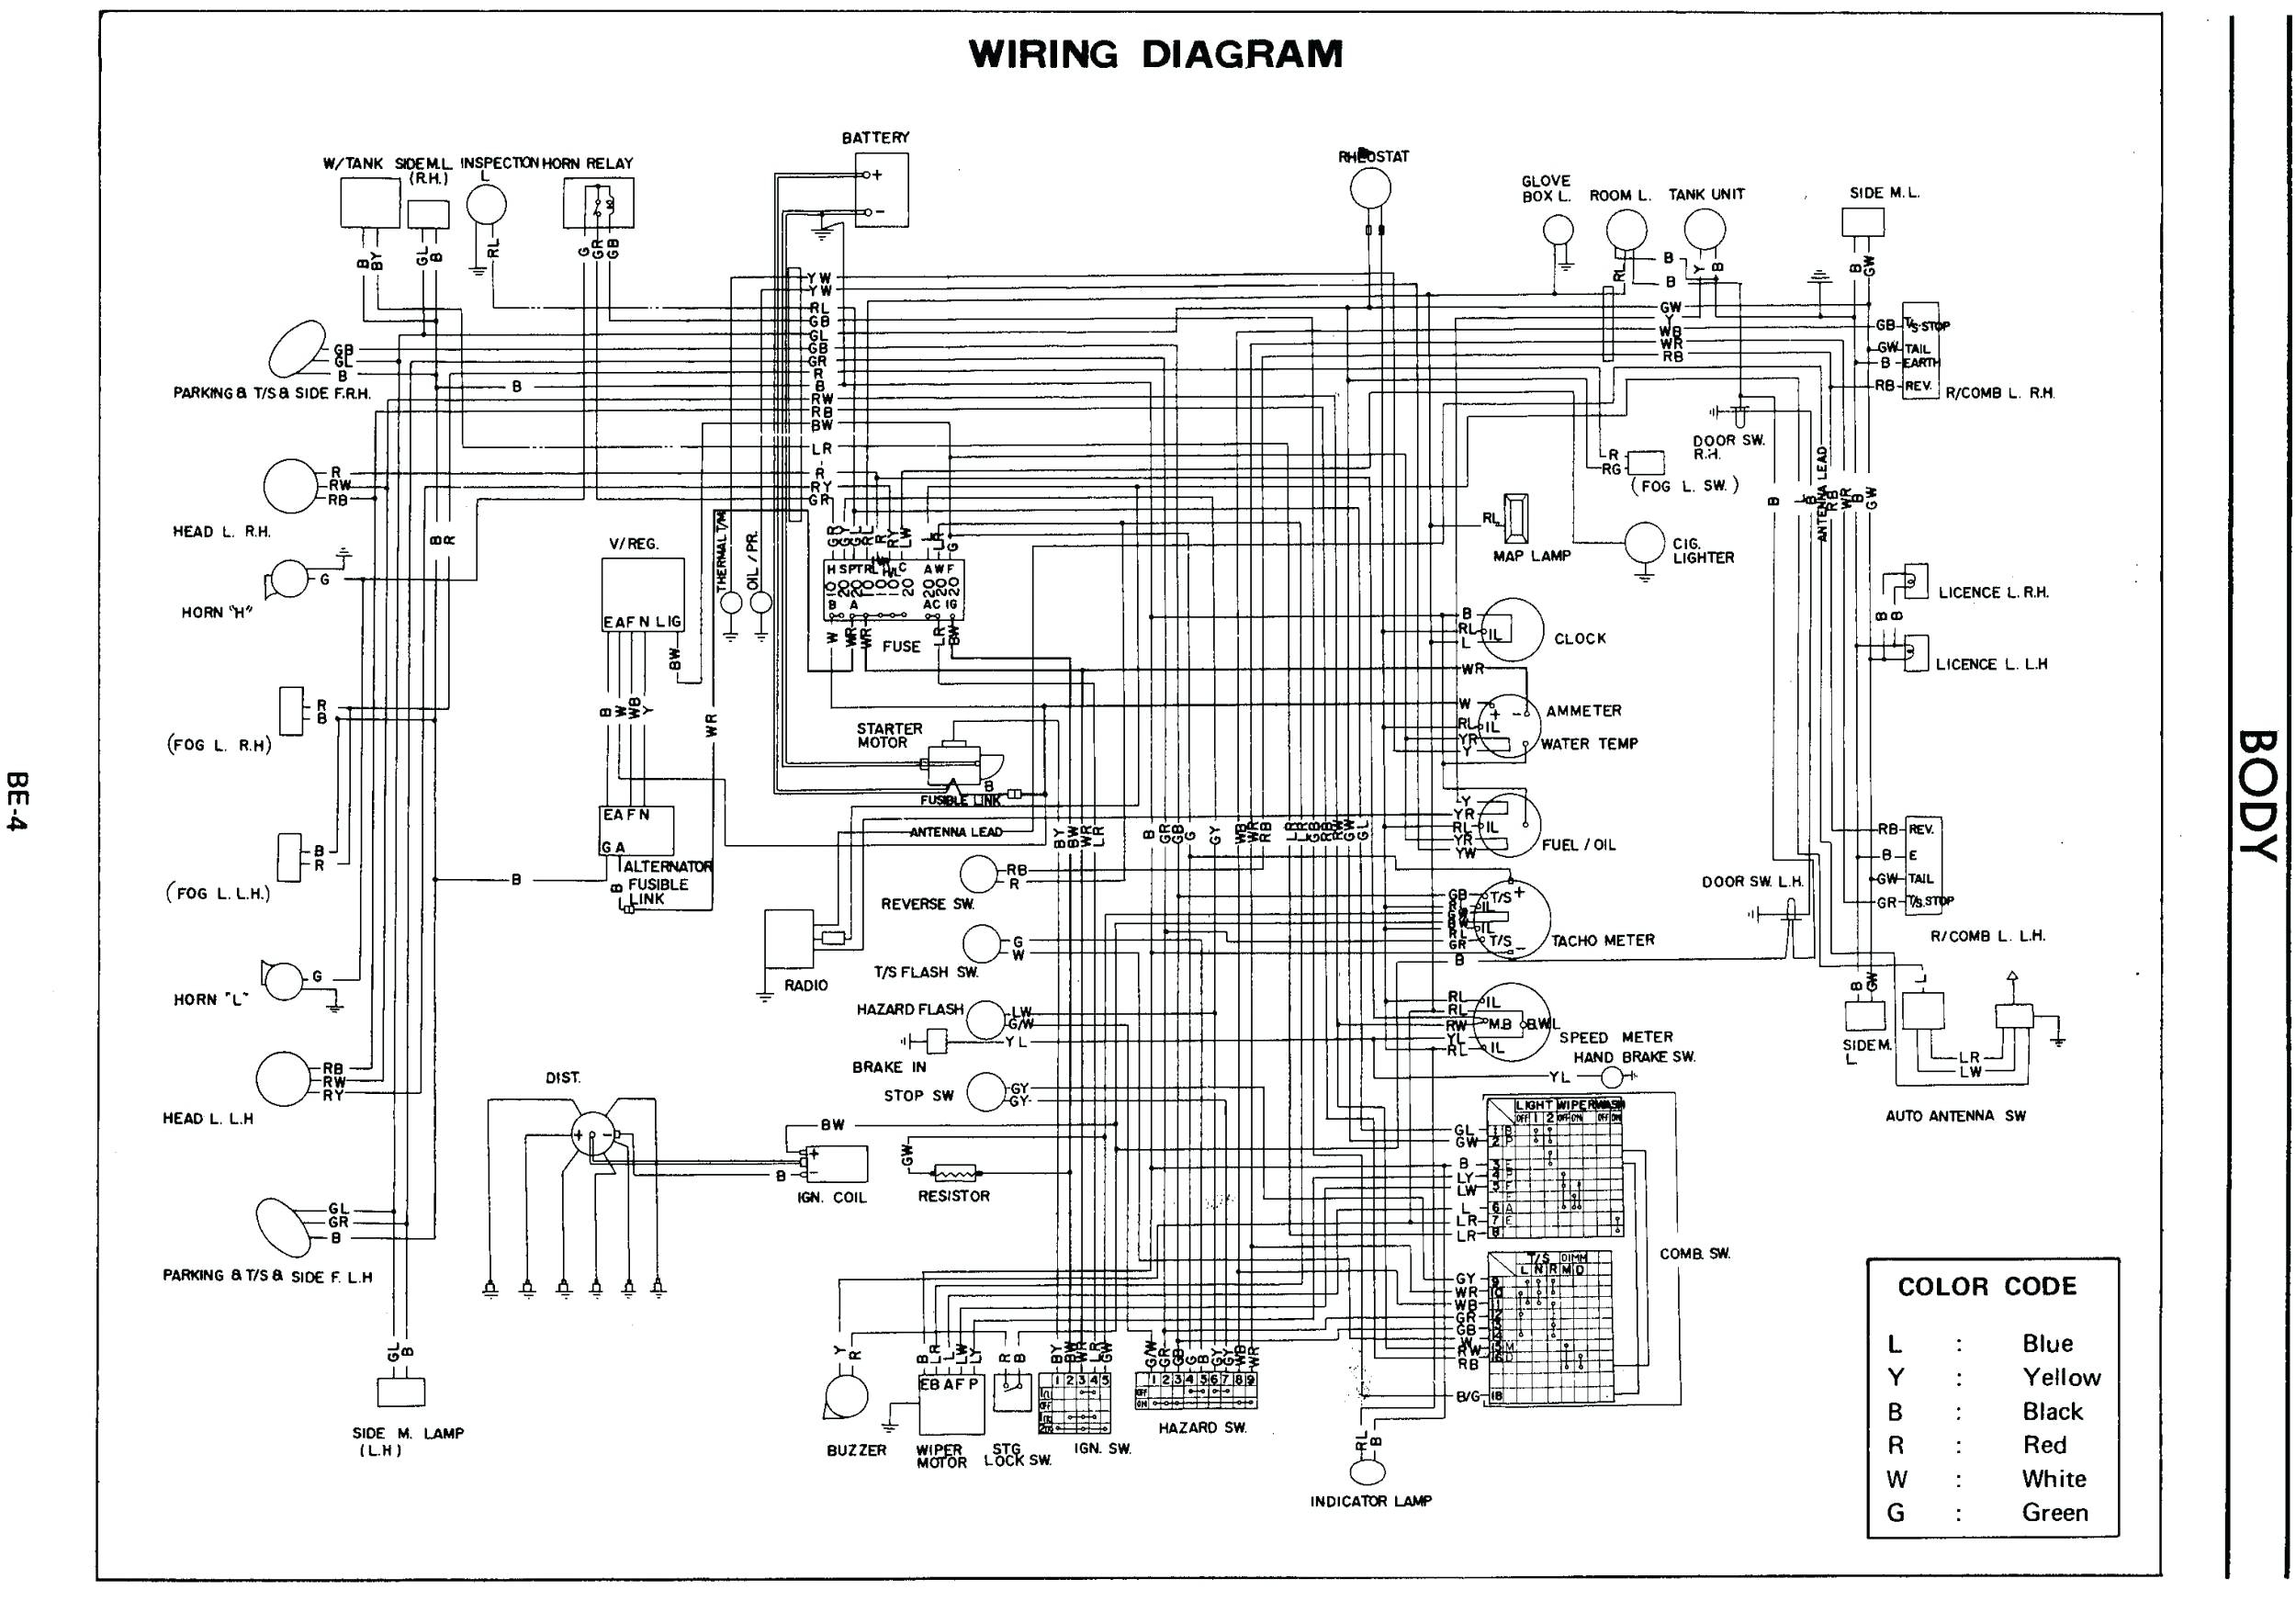 2003 Mini Cooper Stereo Wiring Diagram : Mini cooper wiring diagram collection